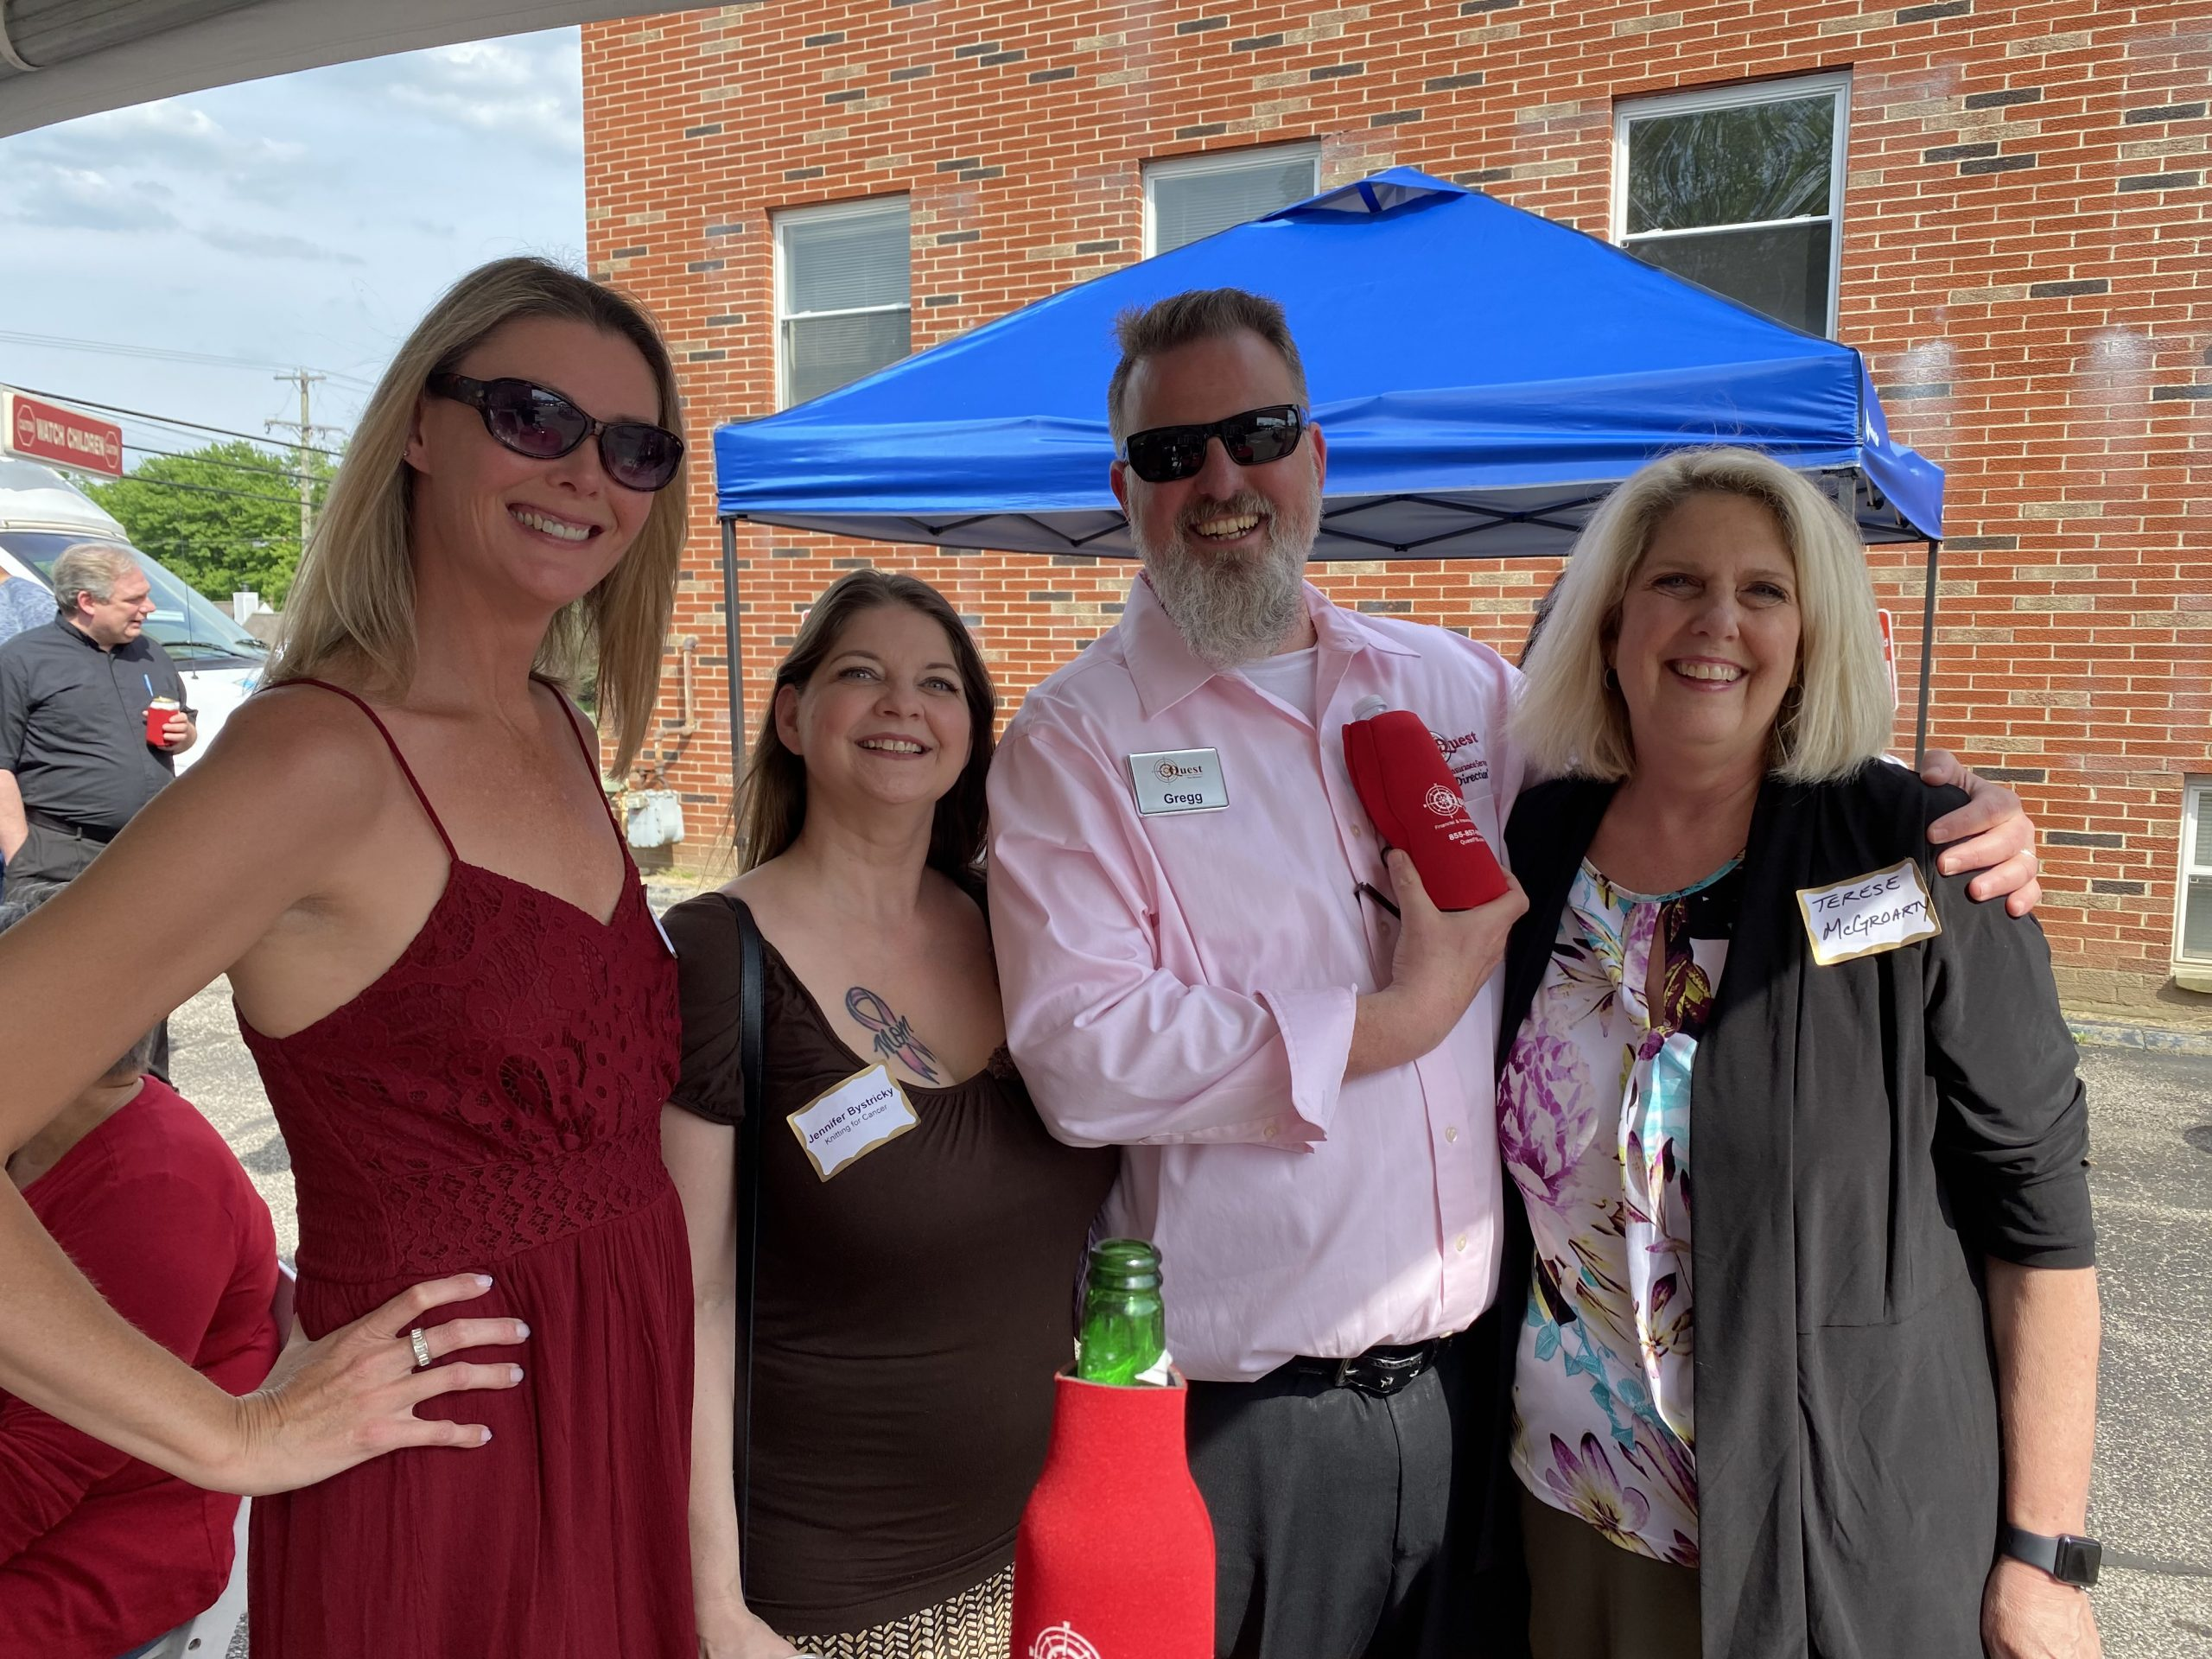 What a beautiful day to celebrate Quest Financial & Insurance Services 10 year Anniversary! It was a great turnout with live music, cold drinks, Mission BBQ, and.... an ICE CREAM TRUCK!! Gregg was full of surprises and support for community leaders and Knitting for Cancer. Thank you Greg, Maureen, and Quest for a wonderful time! Congratulations and cheers to many more!